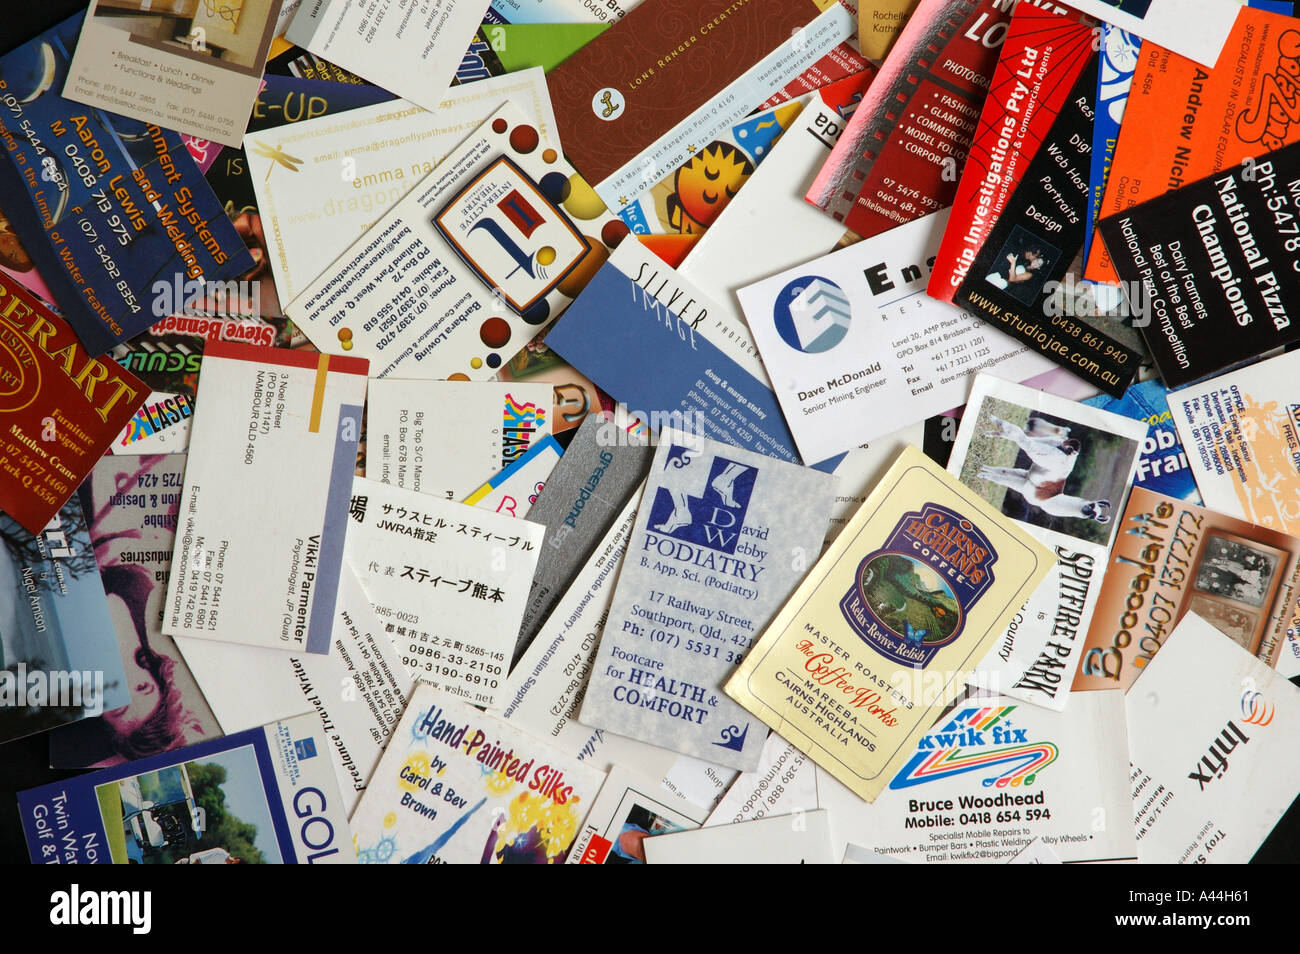 pile of mixed business cards dsca 2042 Stock Photo, Royalty Free ...